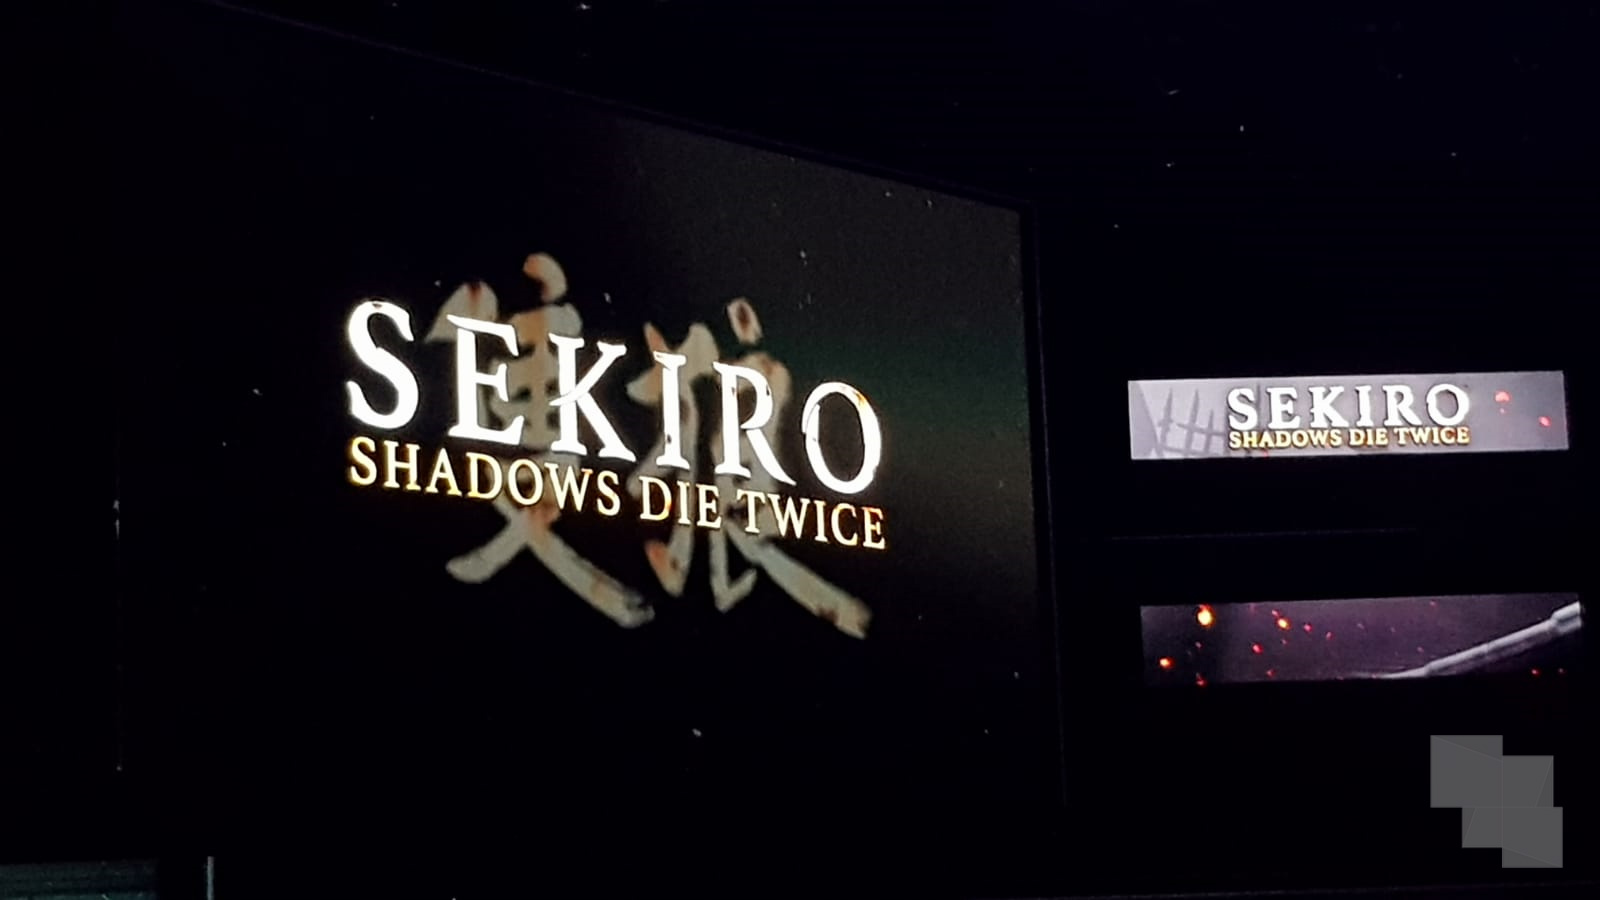 Sekiro: Shadows Die Twice, lo nuevo de From Software [E3 2018]